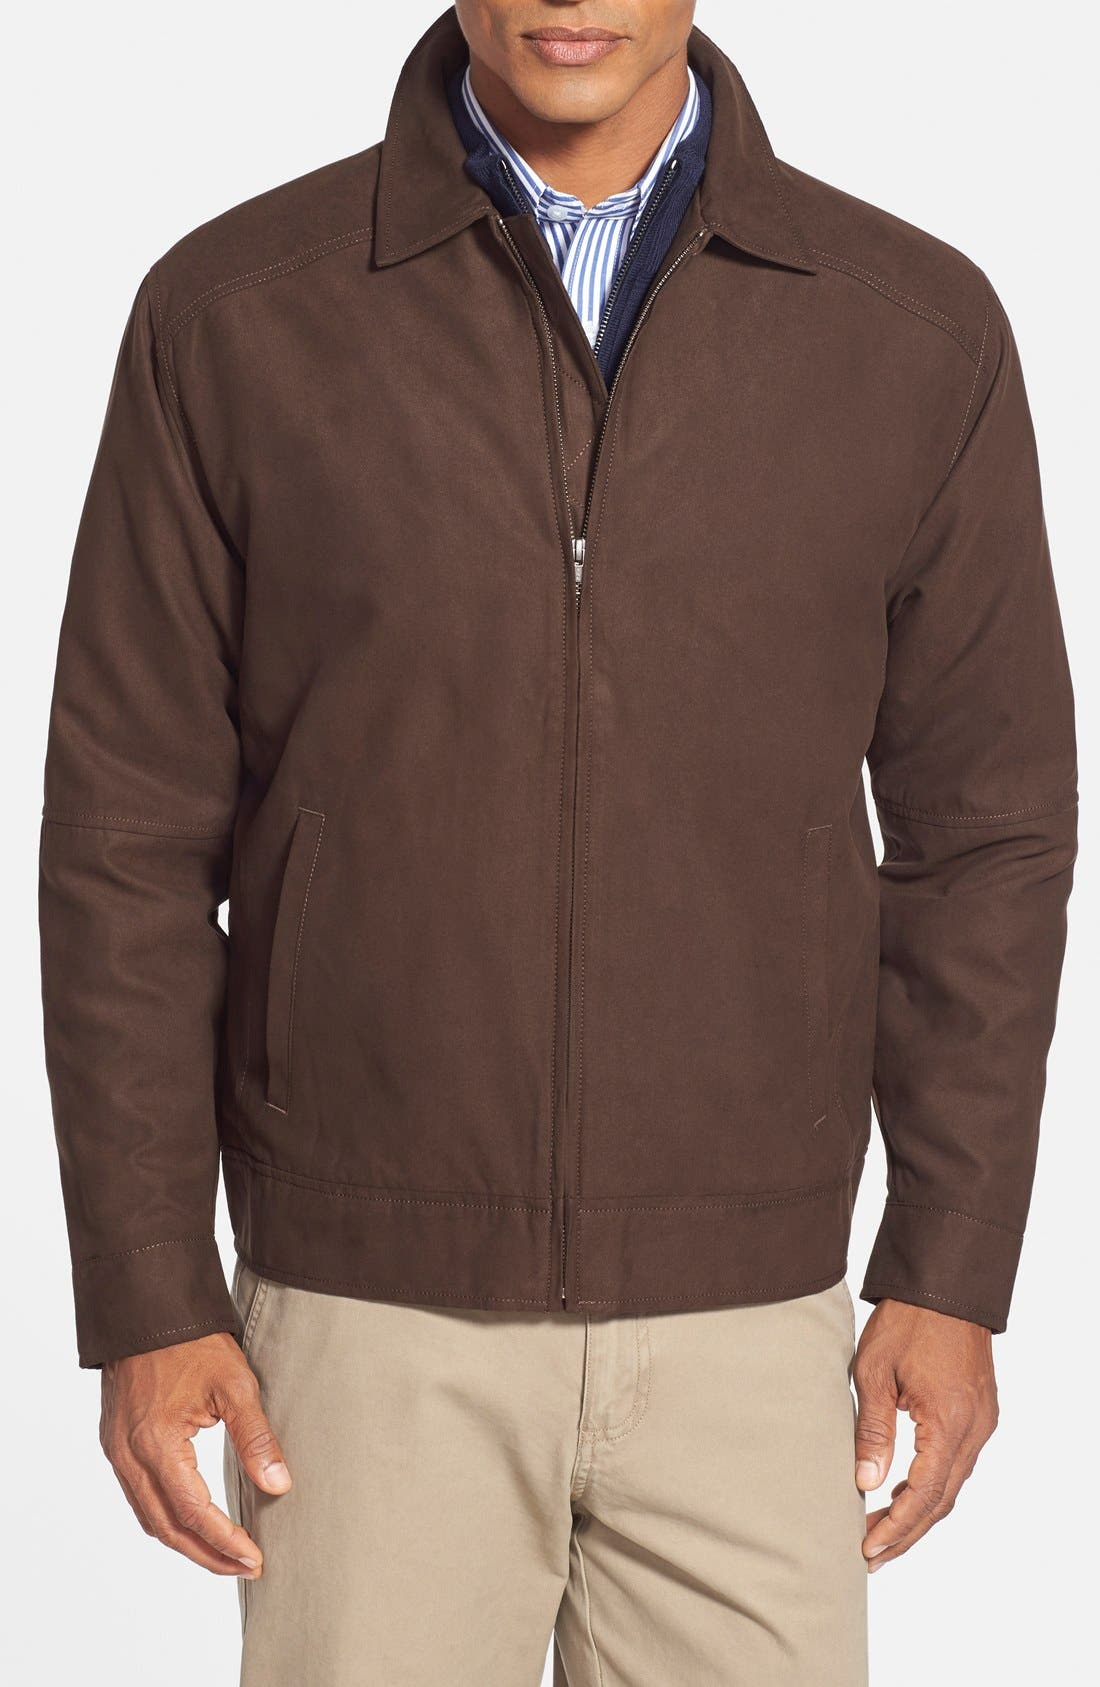 Cutter & Buck 'Roosevelt' Classic Fit Water Resistant Full Zip Jacket (Online Only)